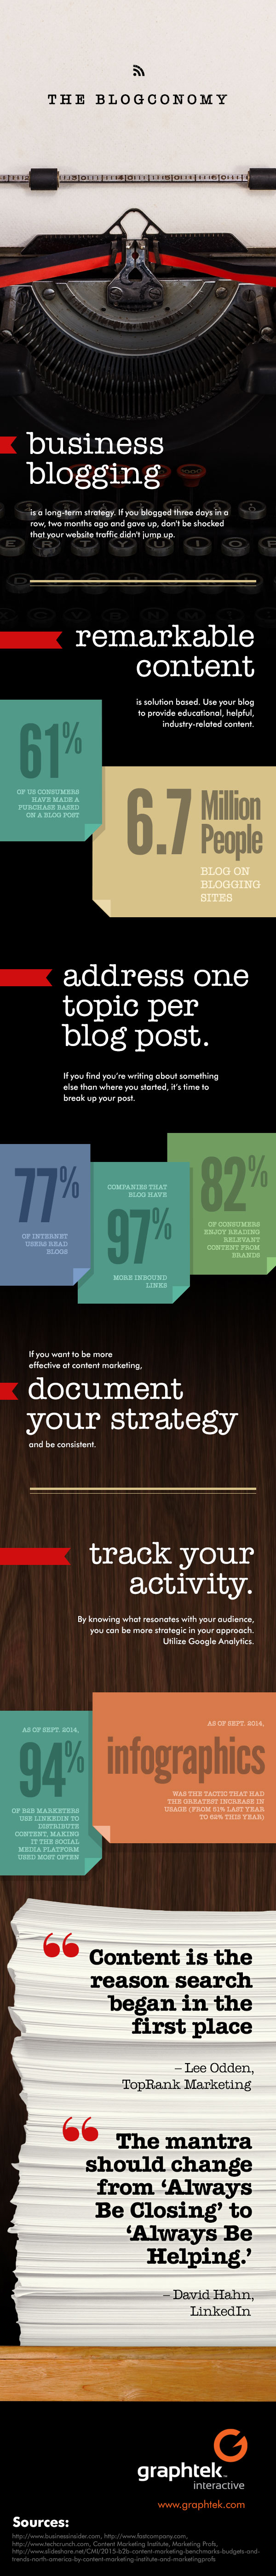 infographic___content_marketing_v3